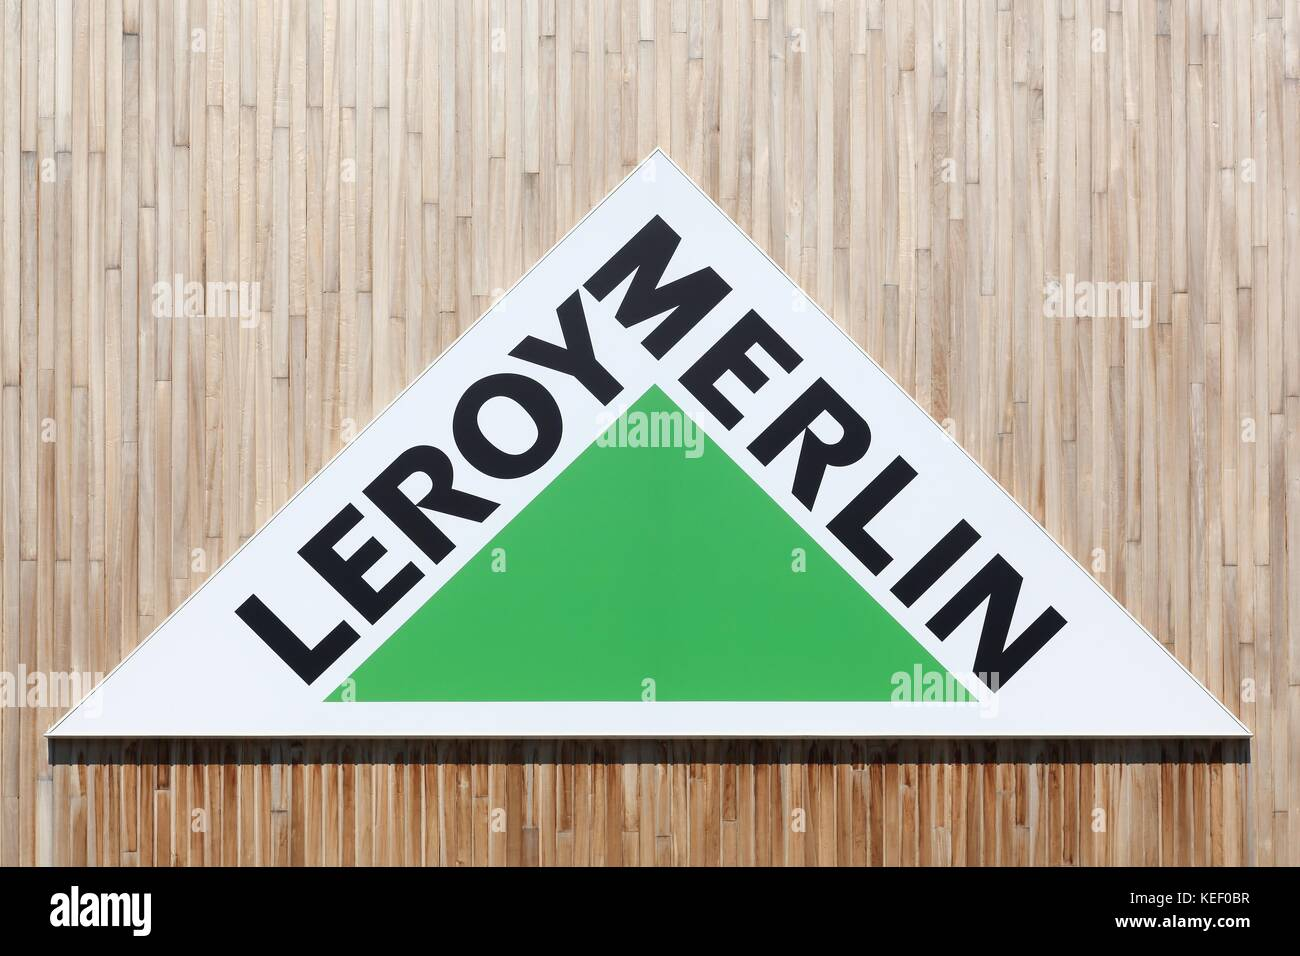 Leroy Merlin France Stock Photos Leroy Merlin France Stock Images